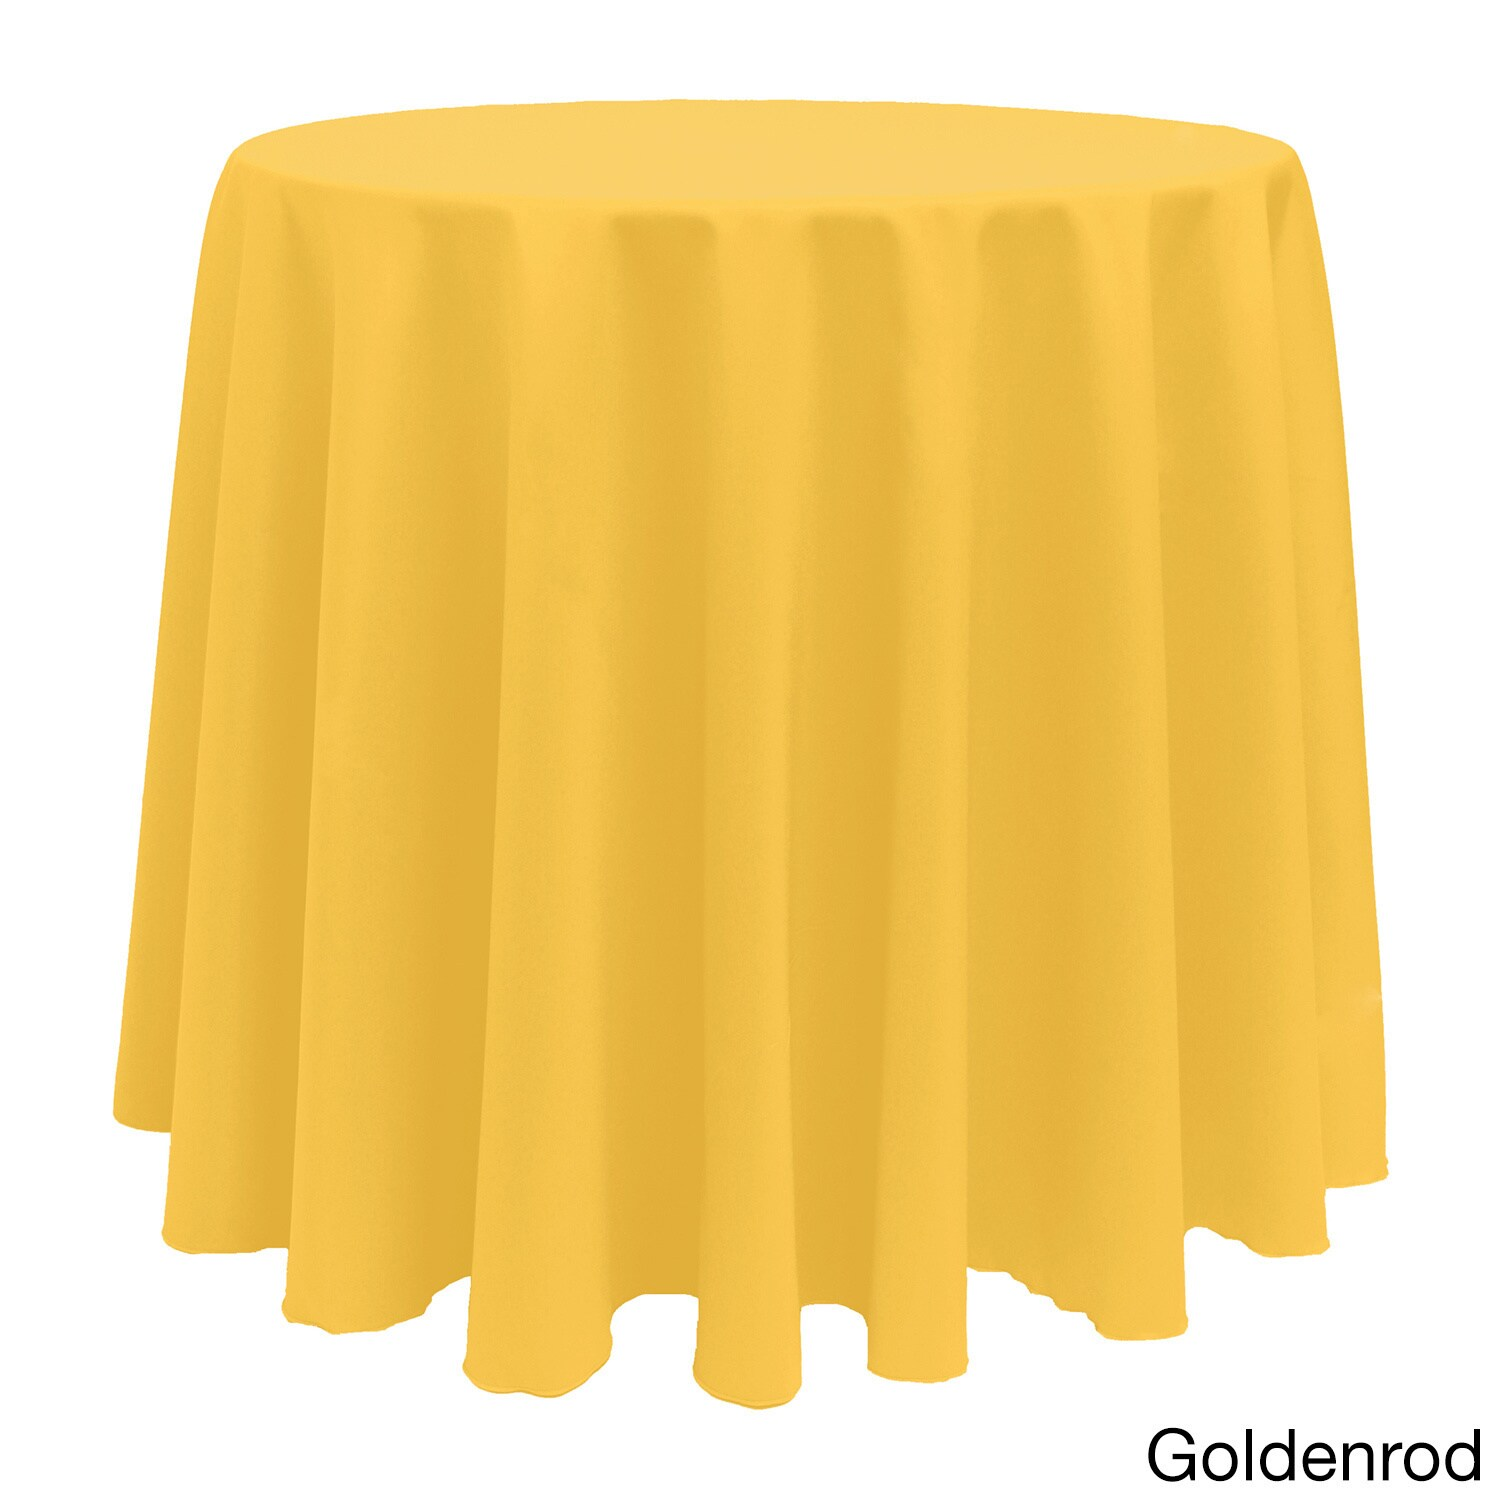 Exceptionnel Shop Bright Solid Color 90 Inch Round Tablecloth   Free Shipping On Orders  Over $45   Overstock.com   10222596